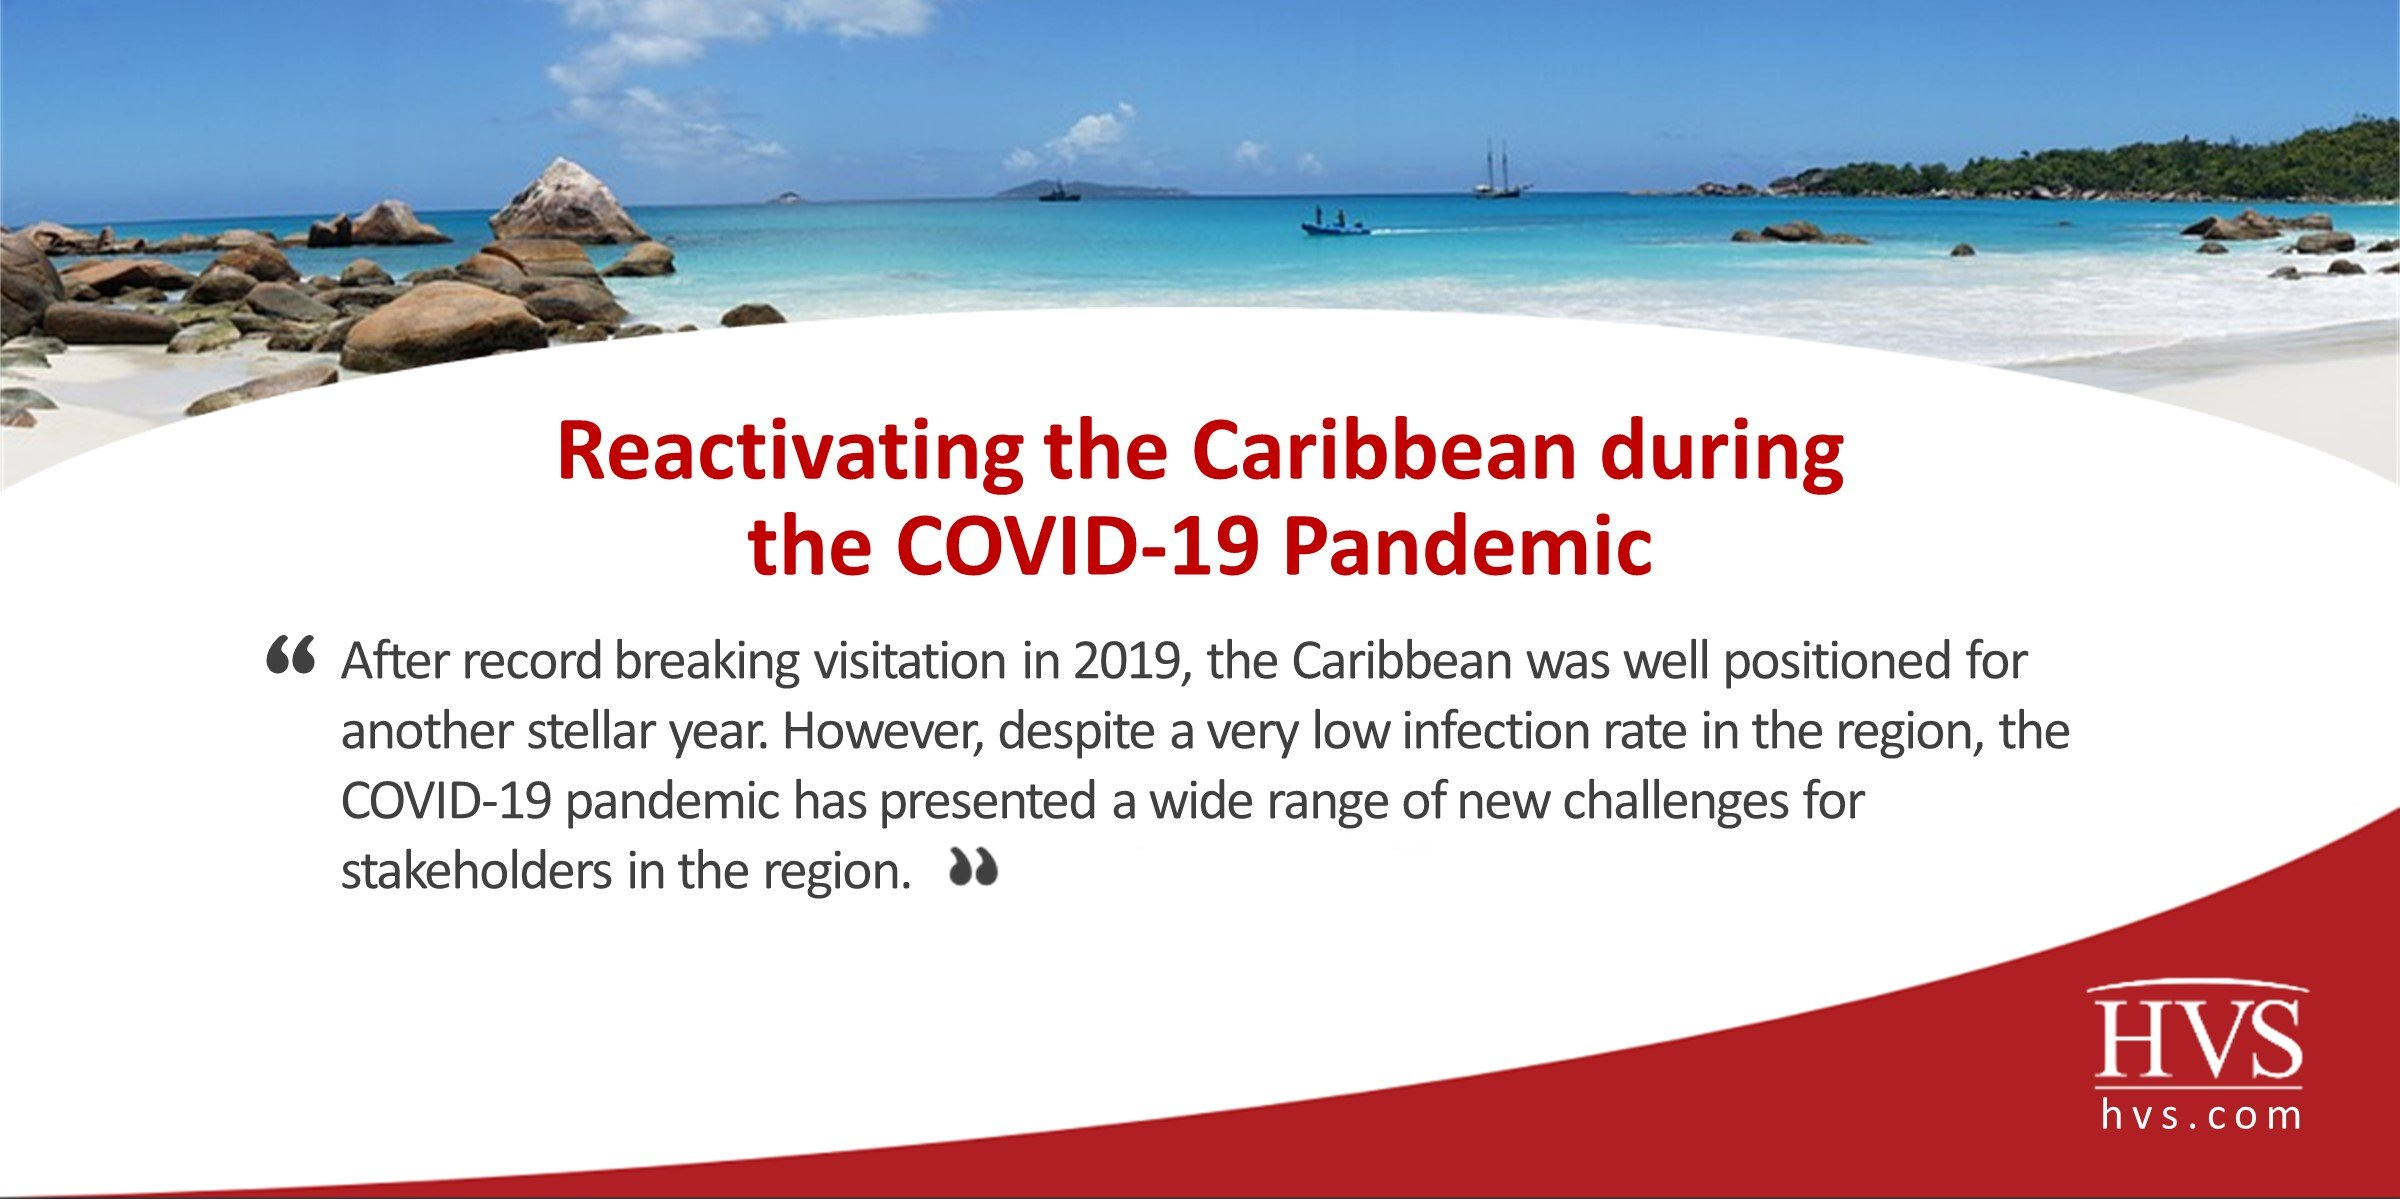 Reactivating the Caribbean during the COVID-19 Pandemic